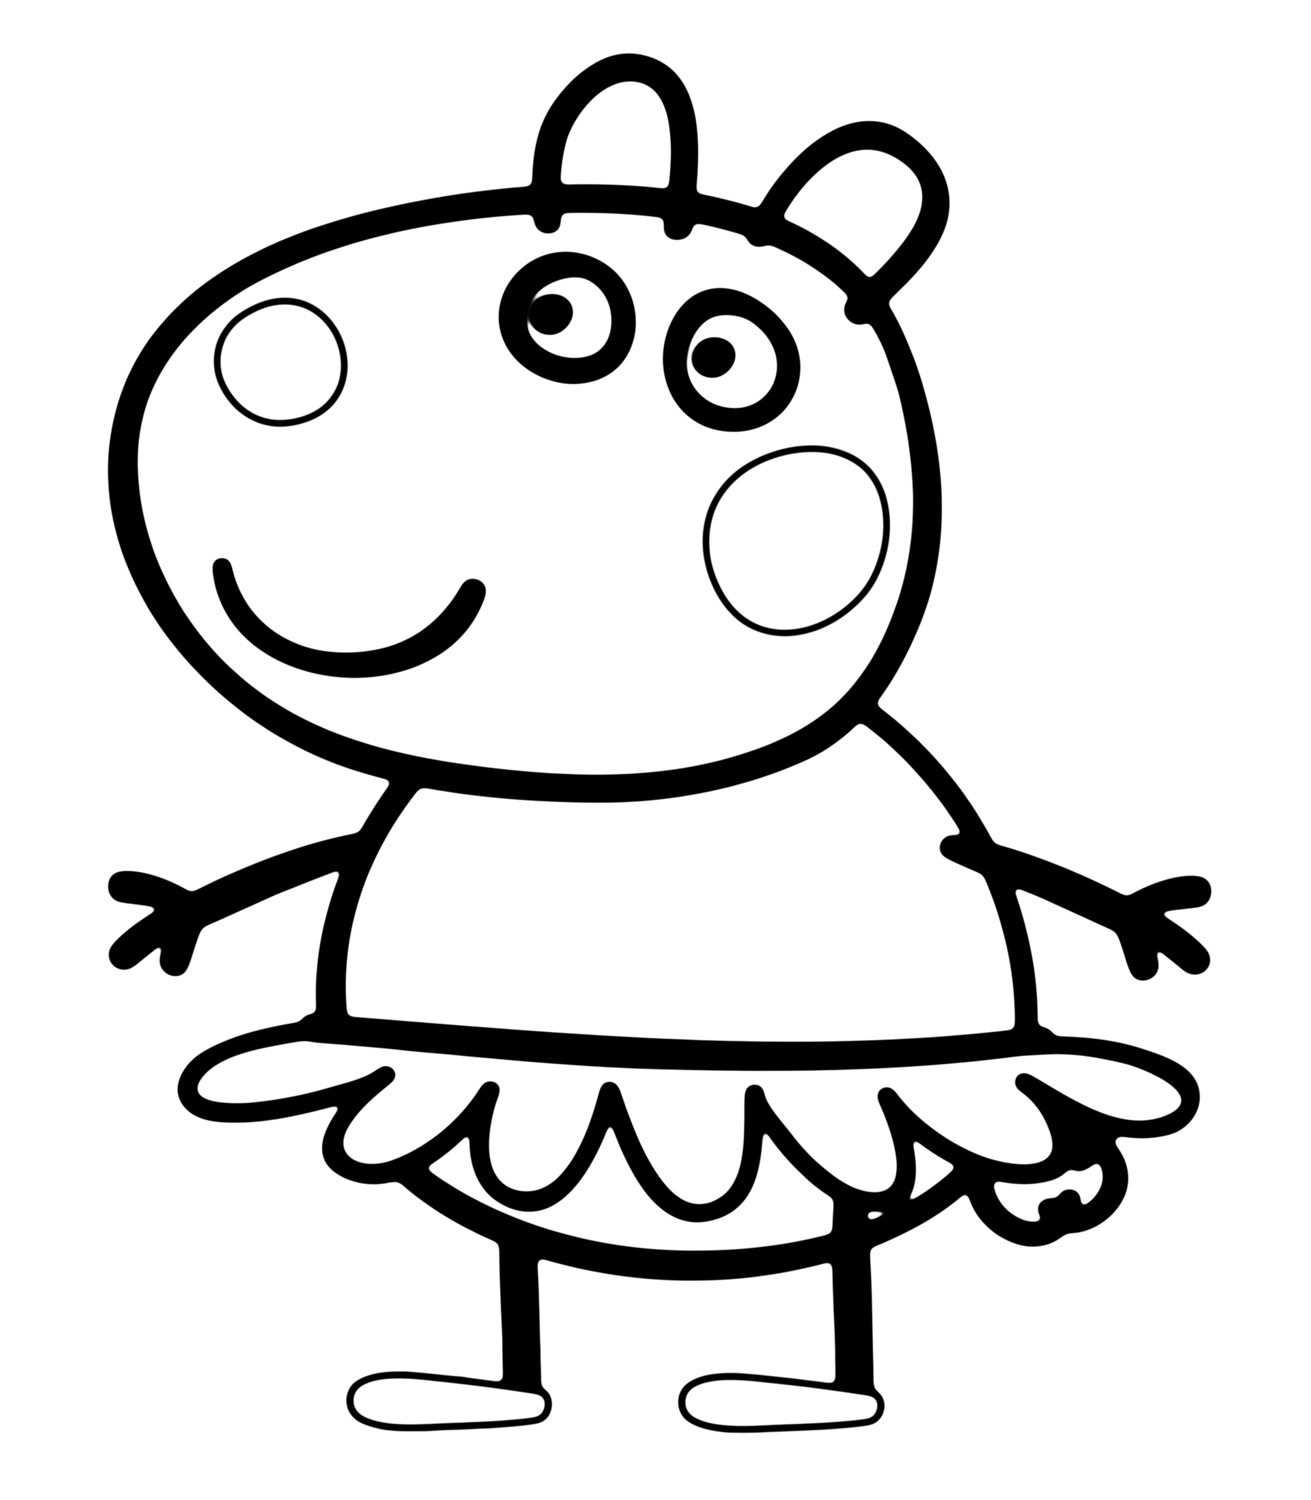 Awesome Grand Canyon Coloring Sheet Collection Peppa Pig Coloring Pages Line Luxury Peppa Pig Co Peppa Pig Colouring Peppa Pig Coloring Pages Peppa Pig Drawing